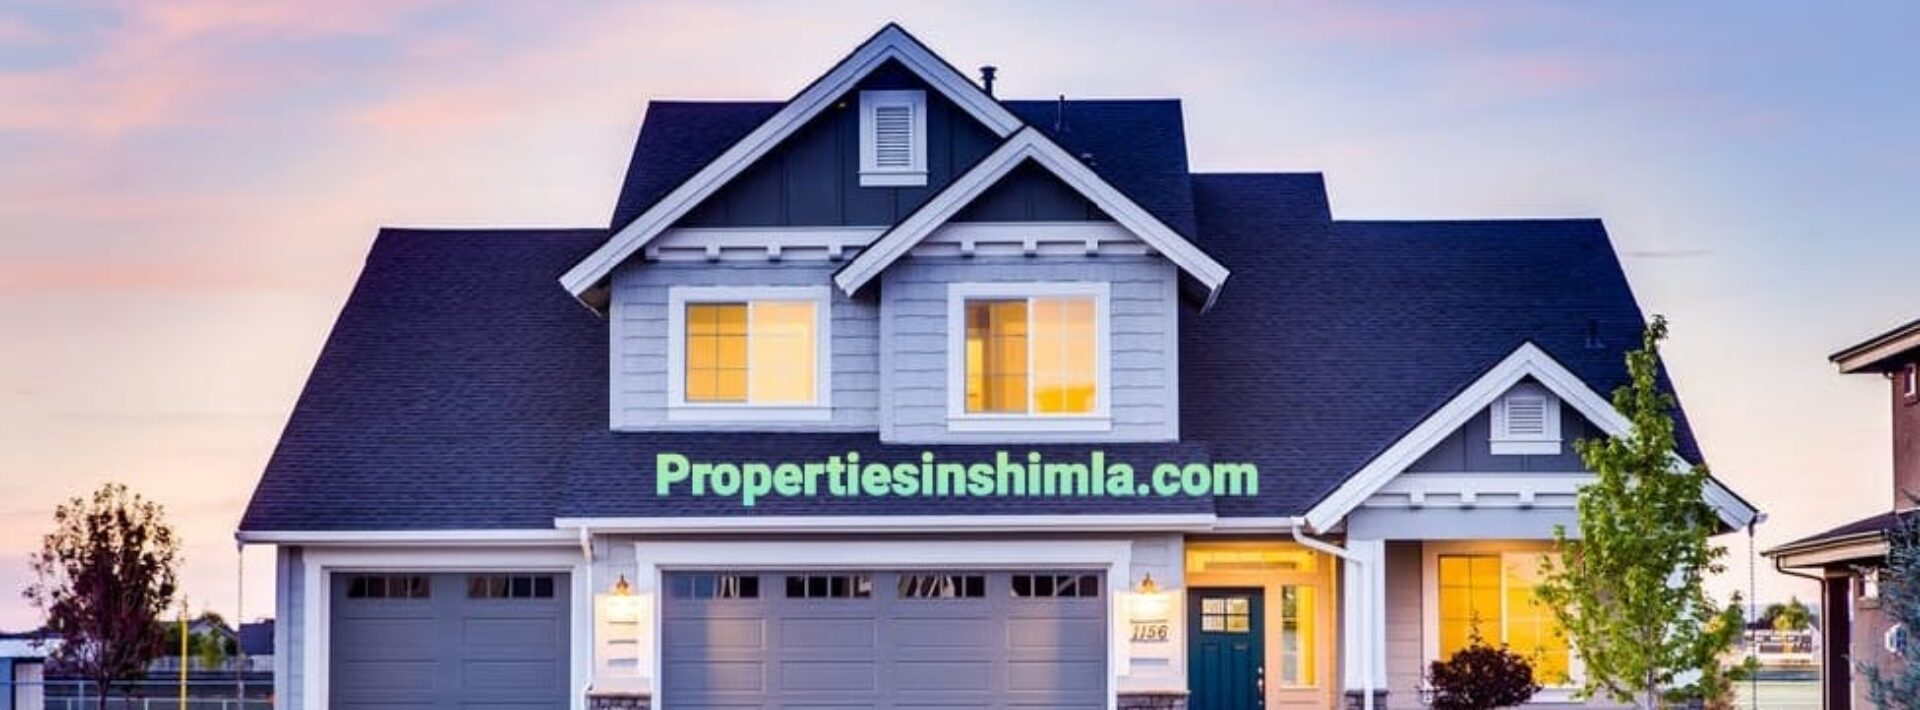 PROPERTIES IN SHIMLA